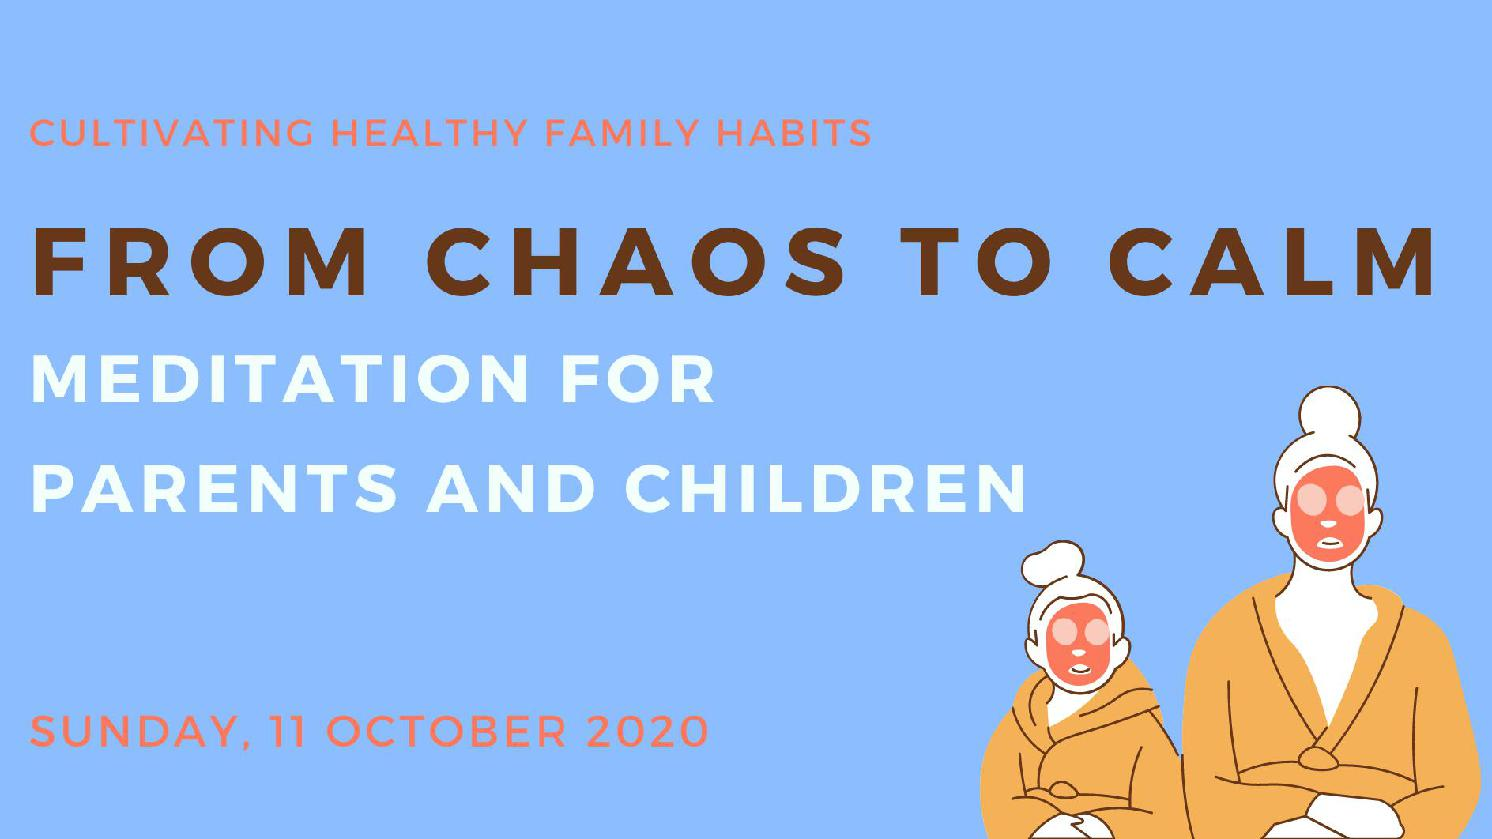 From Chaos to Calm: Meditation for Parents and Children